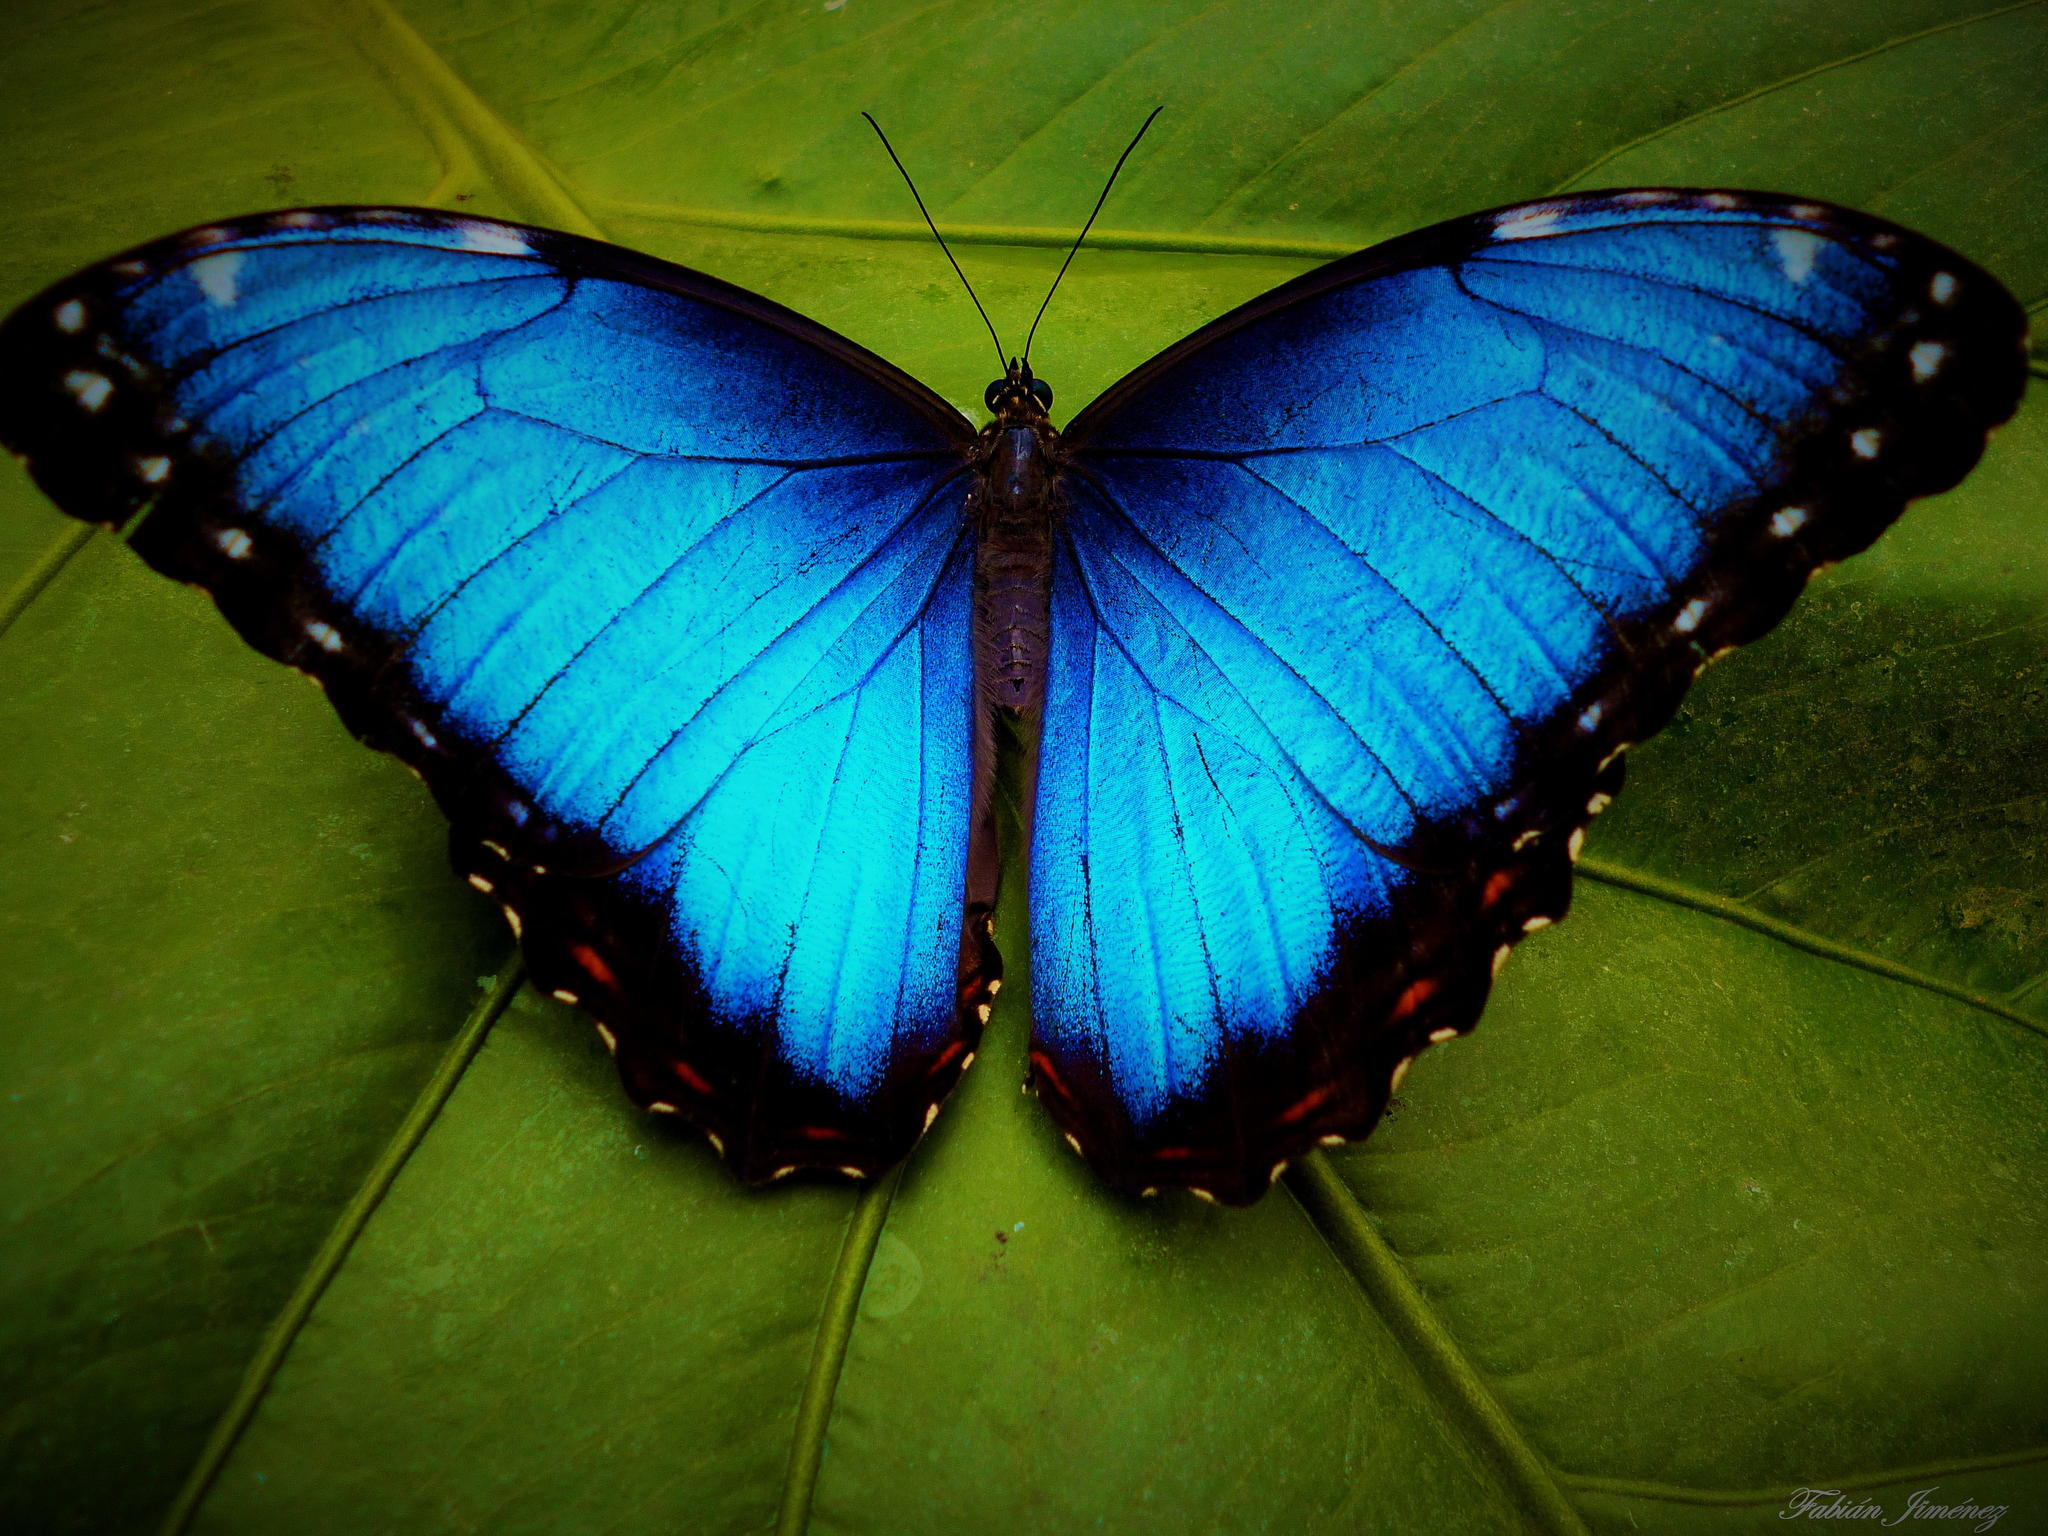 2048x1536 Blue Morpho Butterfly Images